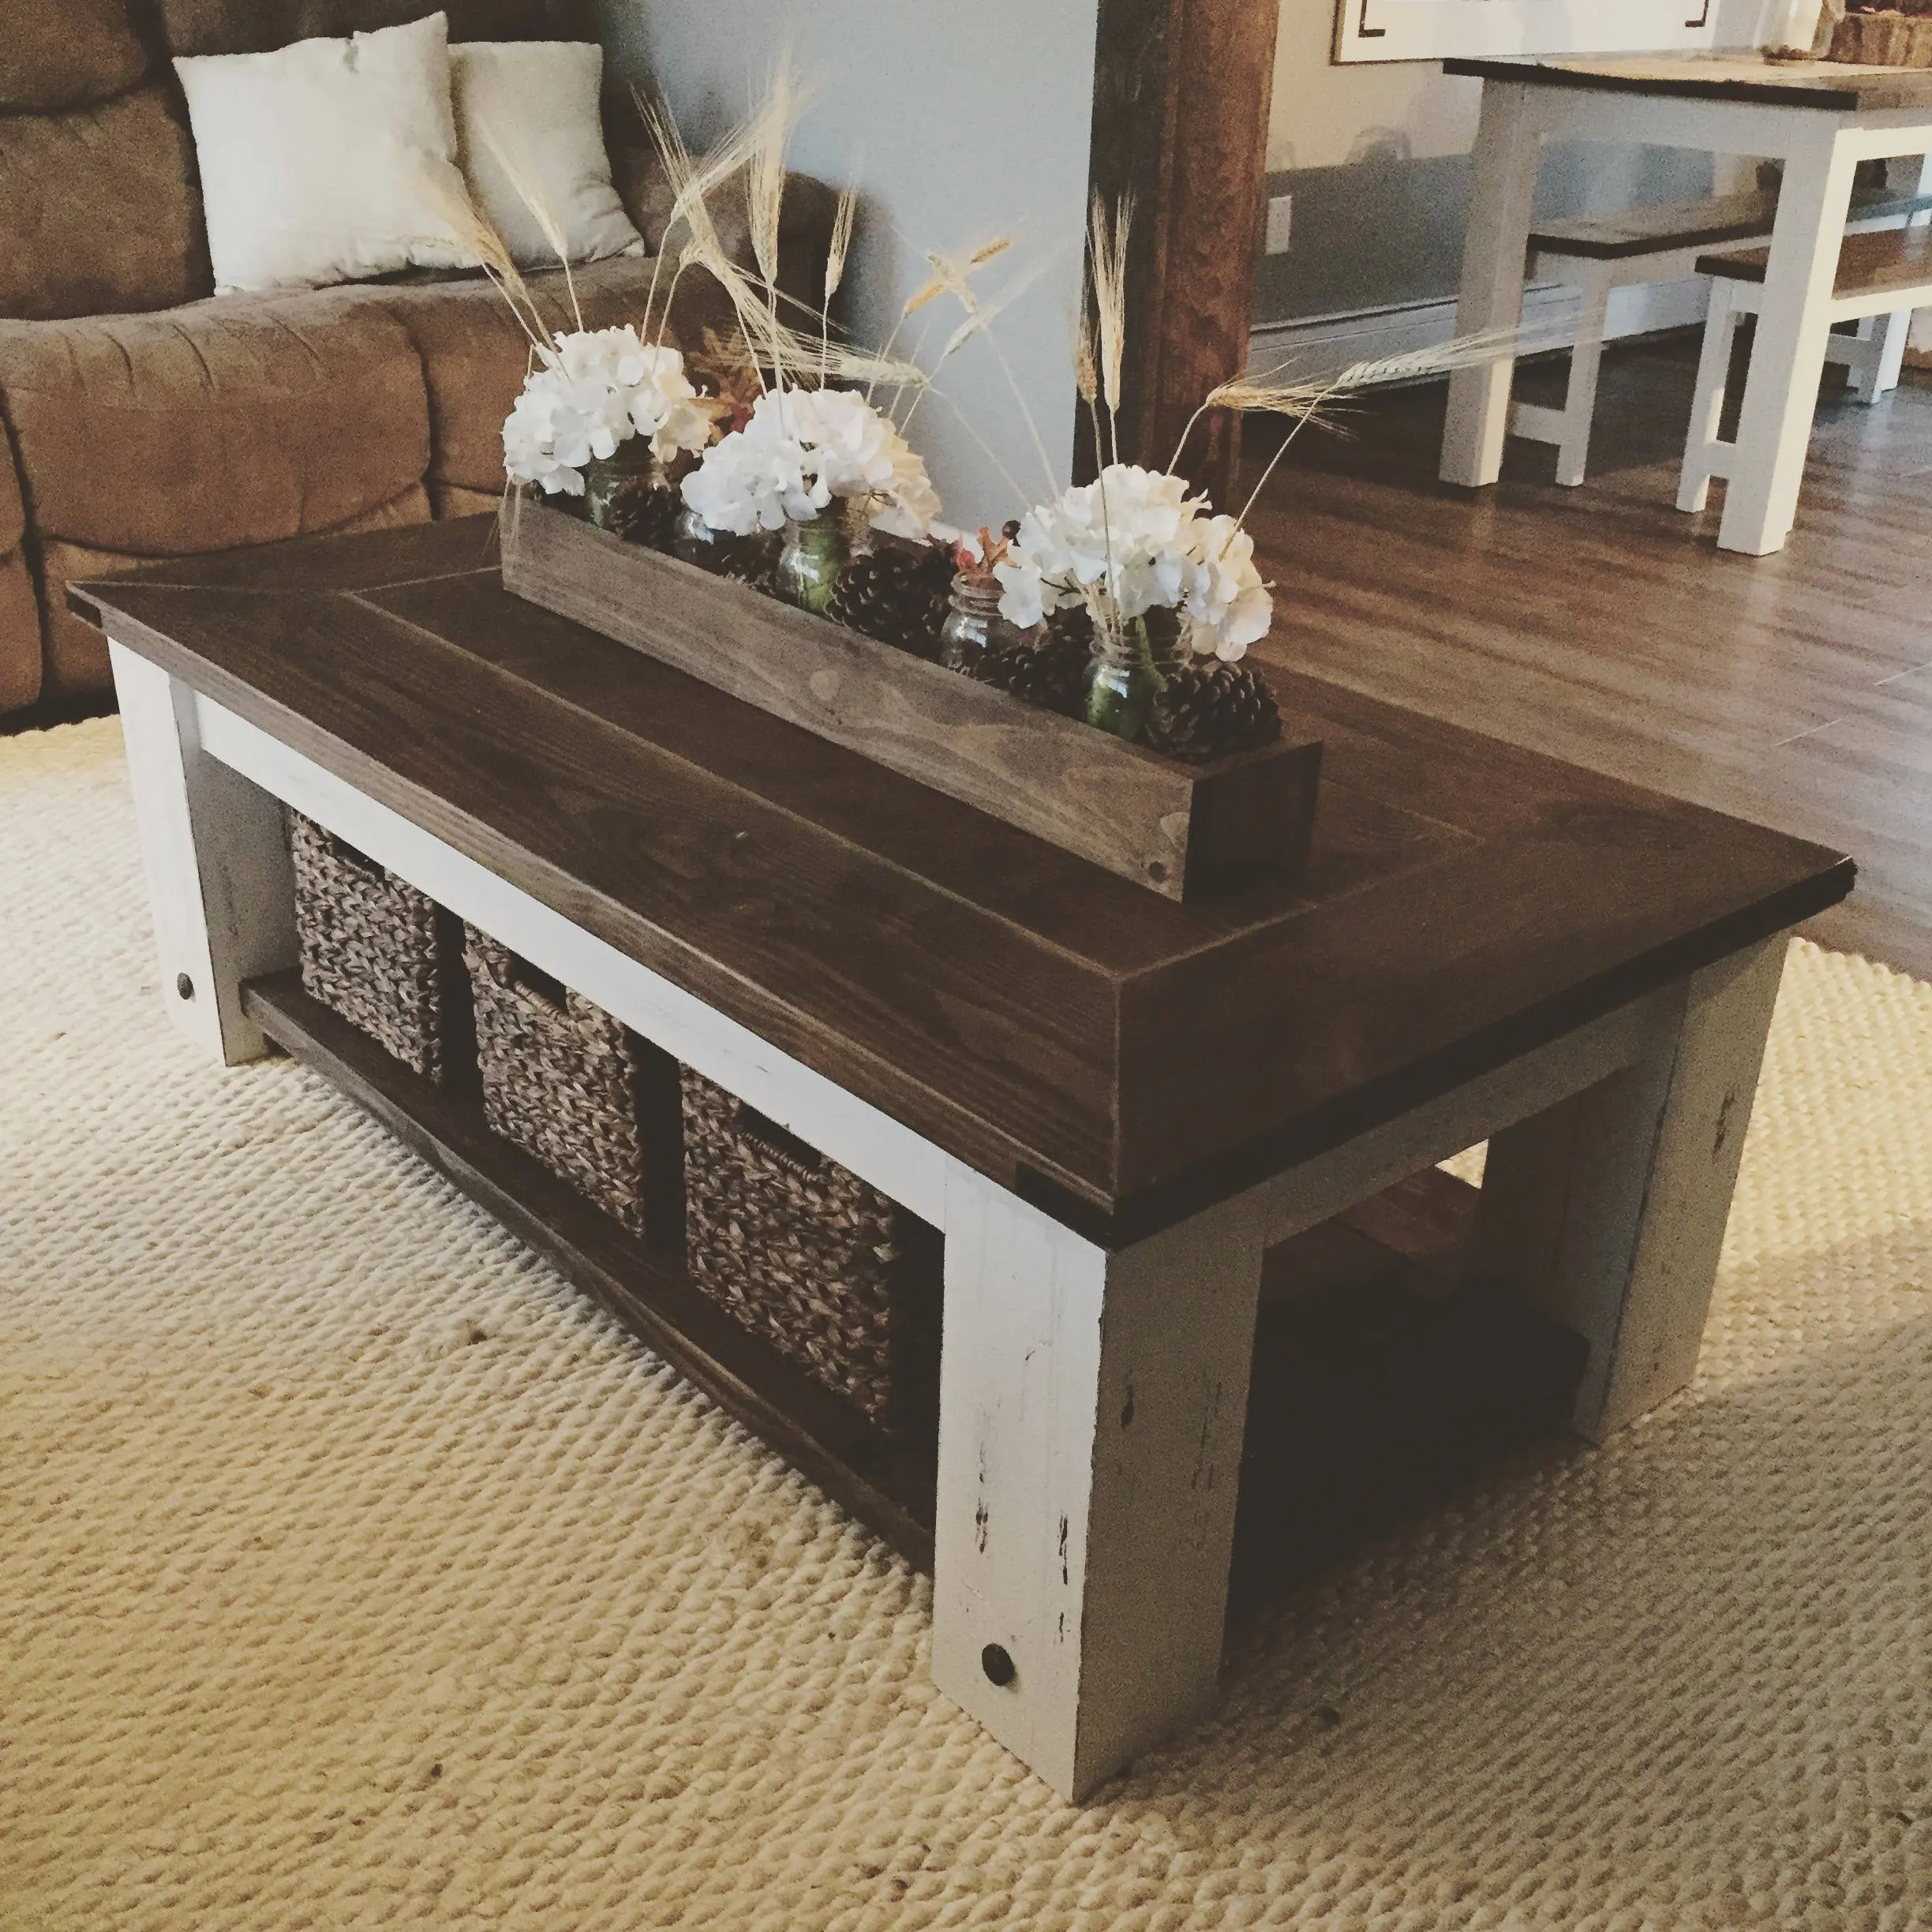 diy living room furniture plans bungalow ideas uk farmhouse coffee table woodworking etsy image 0